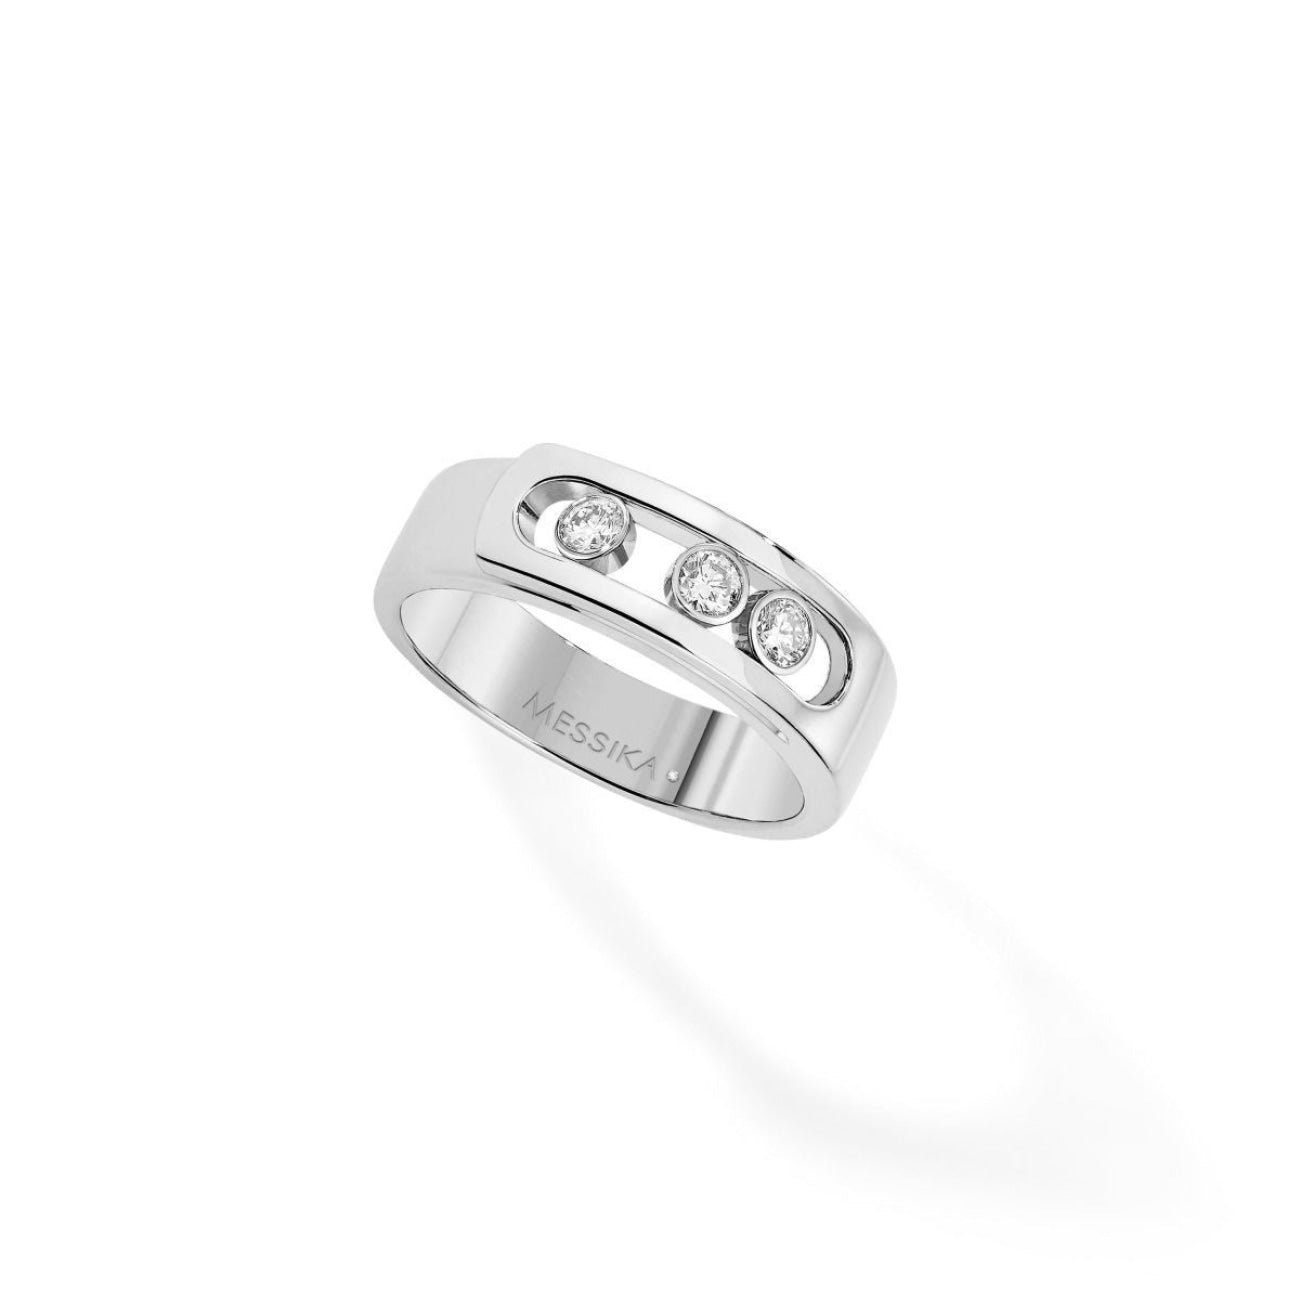 Messika Jewelry - Move Noa RING - WHITE GOLD | Manfredi Jewels